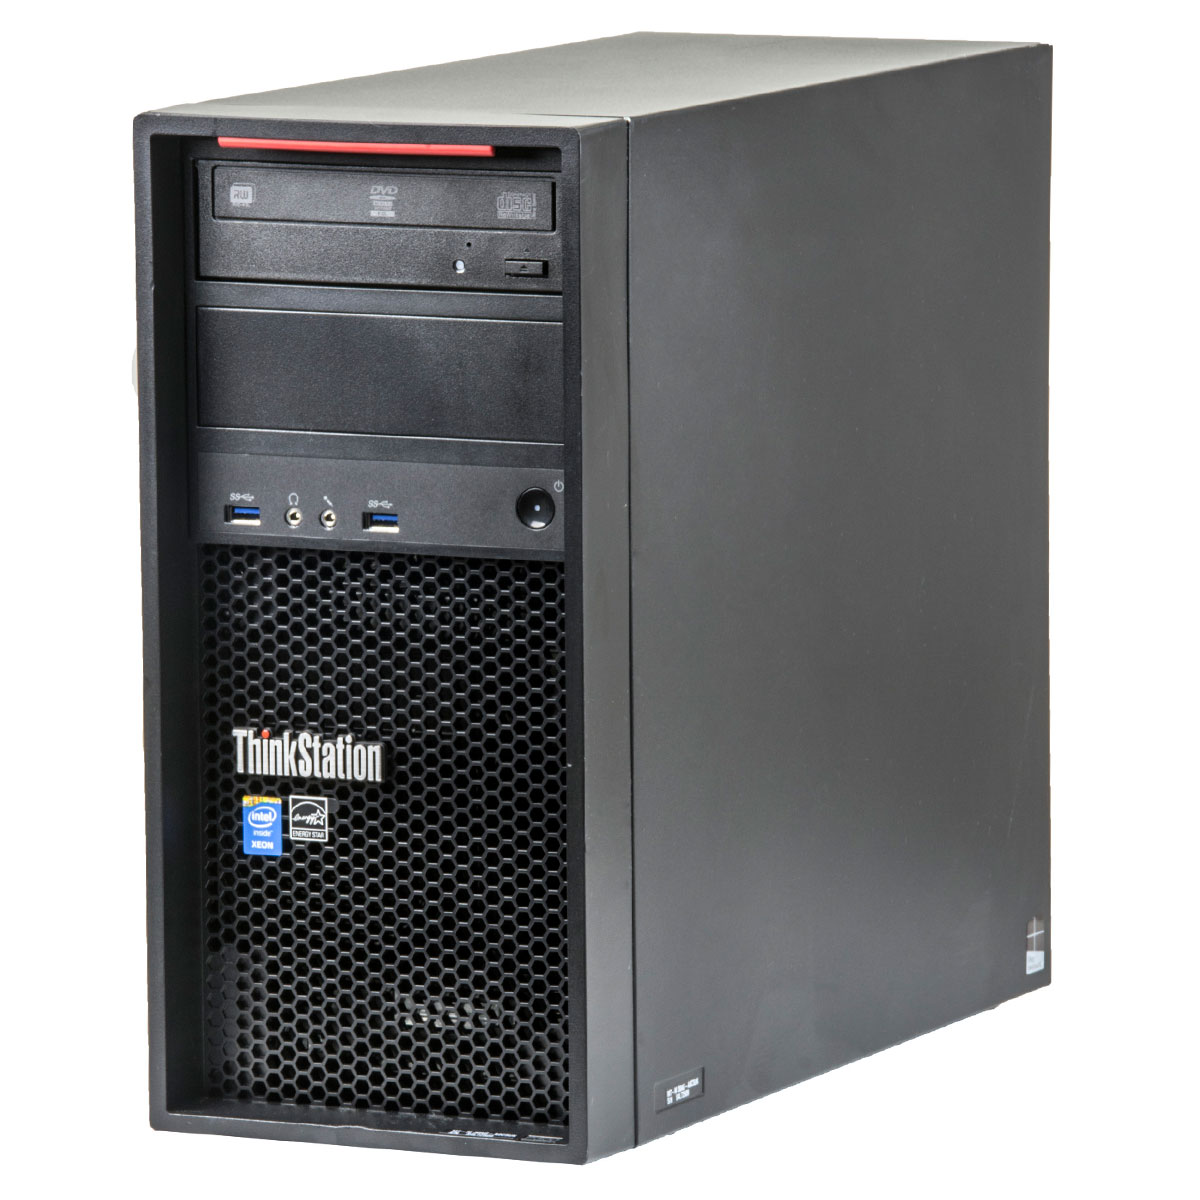 Lenovo ThinkStation P300 Intel Core i5-4590 3.30GHz  8GB DDR3  256GB SSD  DVD-RW  Tower  workstation refurbished